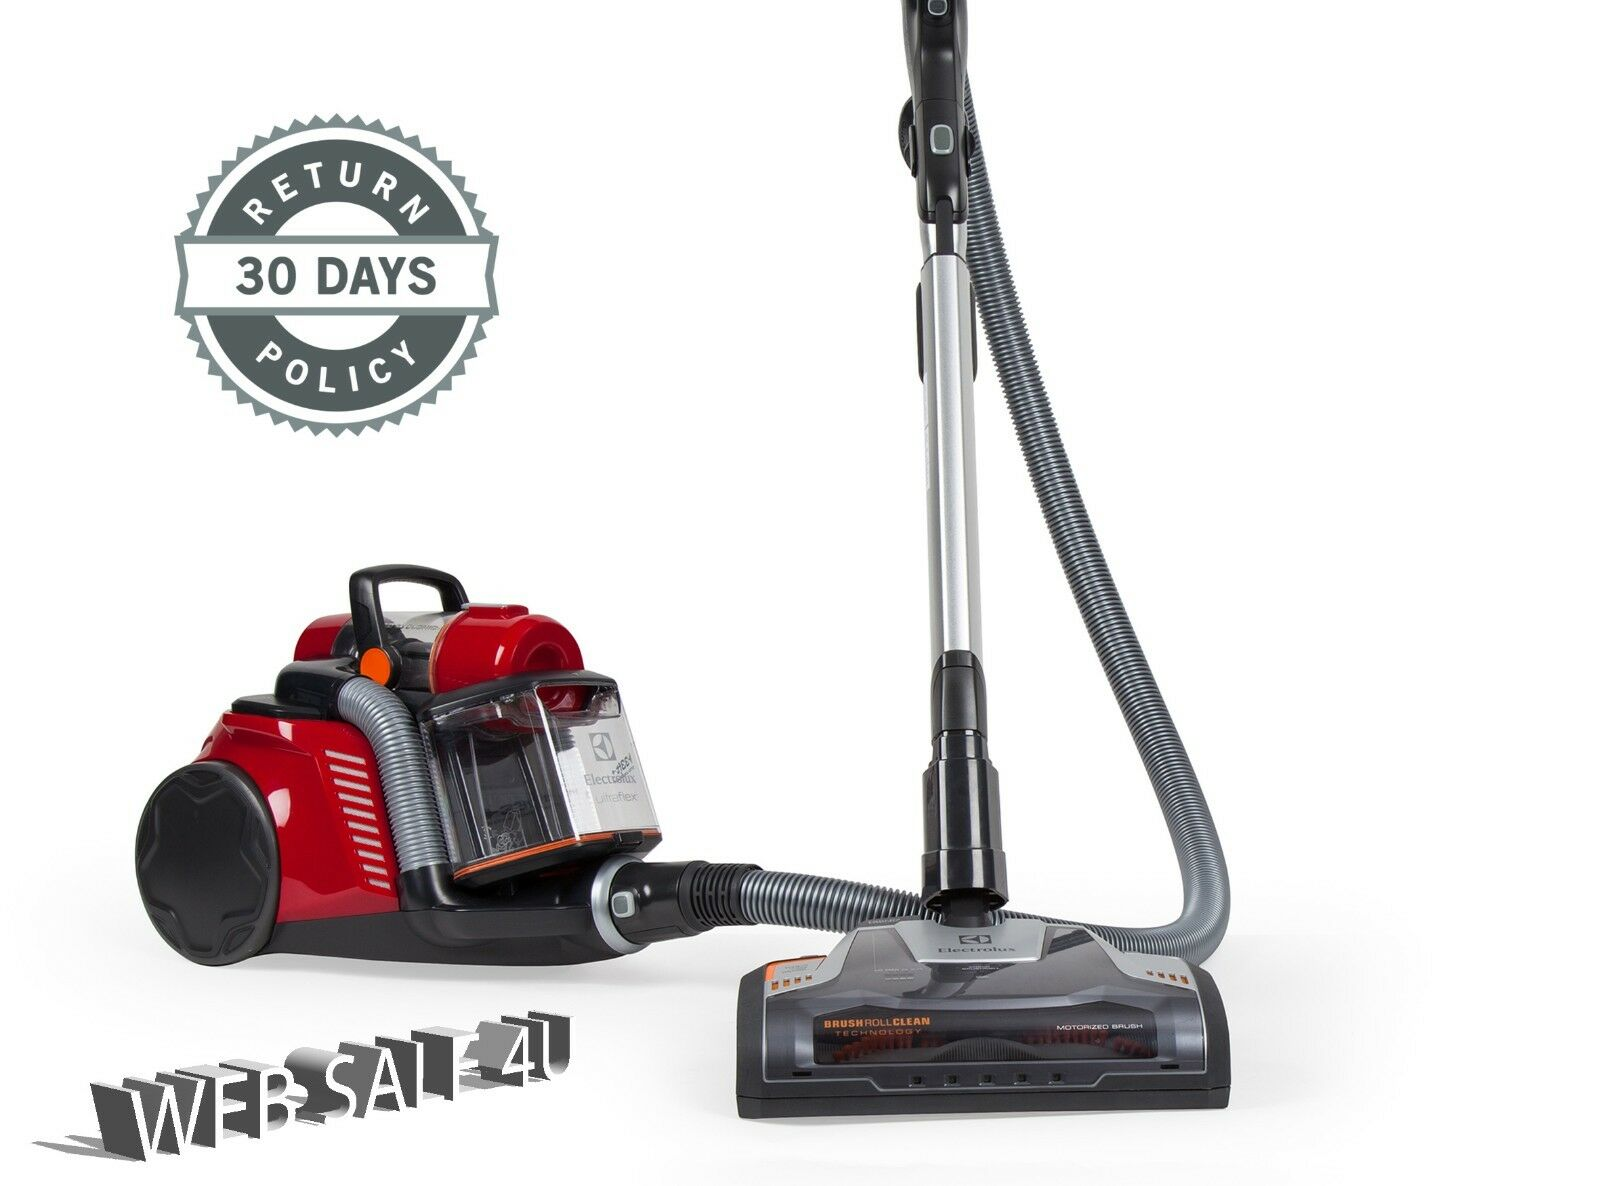 Canister Vacuum Cleaner Bagless HEPA Filter Carpet Electrolux® Cyclonic™ Rewind